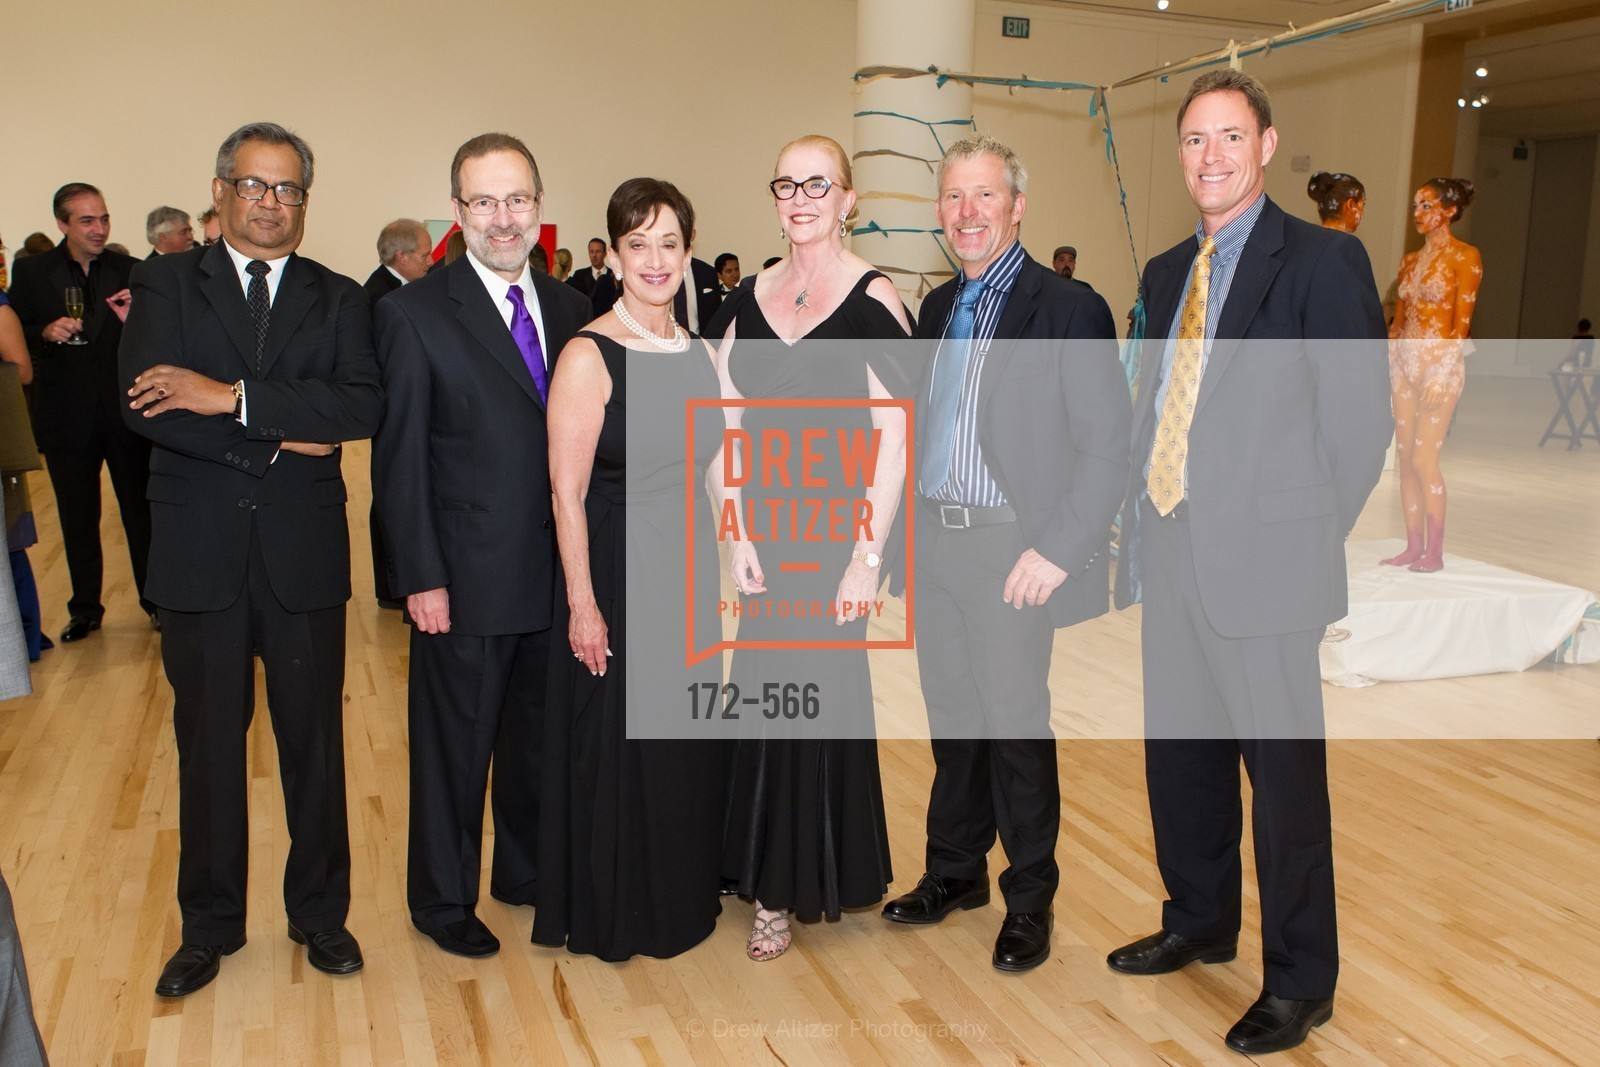 Shamal Roy, Glen Daniel, Michelle Klein, Sally Fera, Richard Eckman, Christian Beckas, SAN JOSE MUSEUM OF ART'S Spectrum Gala - 45th Anniversary, US, September 13th, 2014,Drew Altizer, Drew Altizer Photography, full-service agency, private events, San Francisco photographer, photographer california